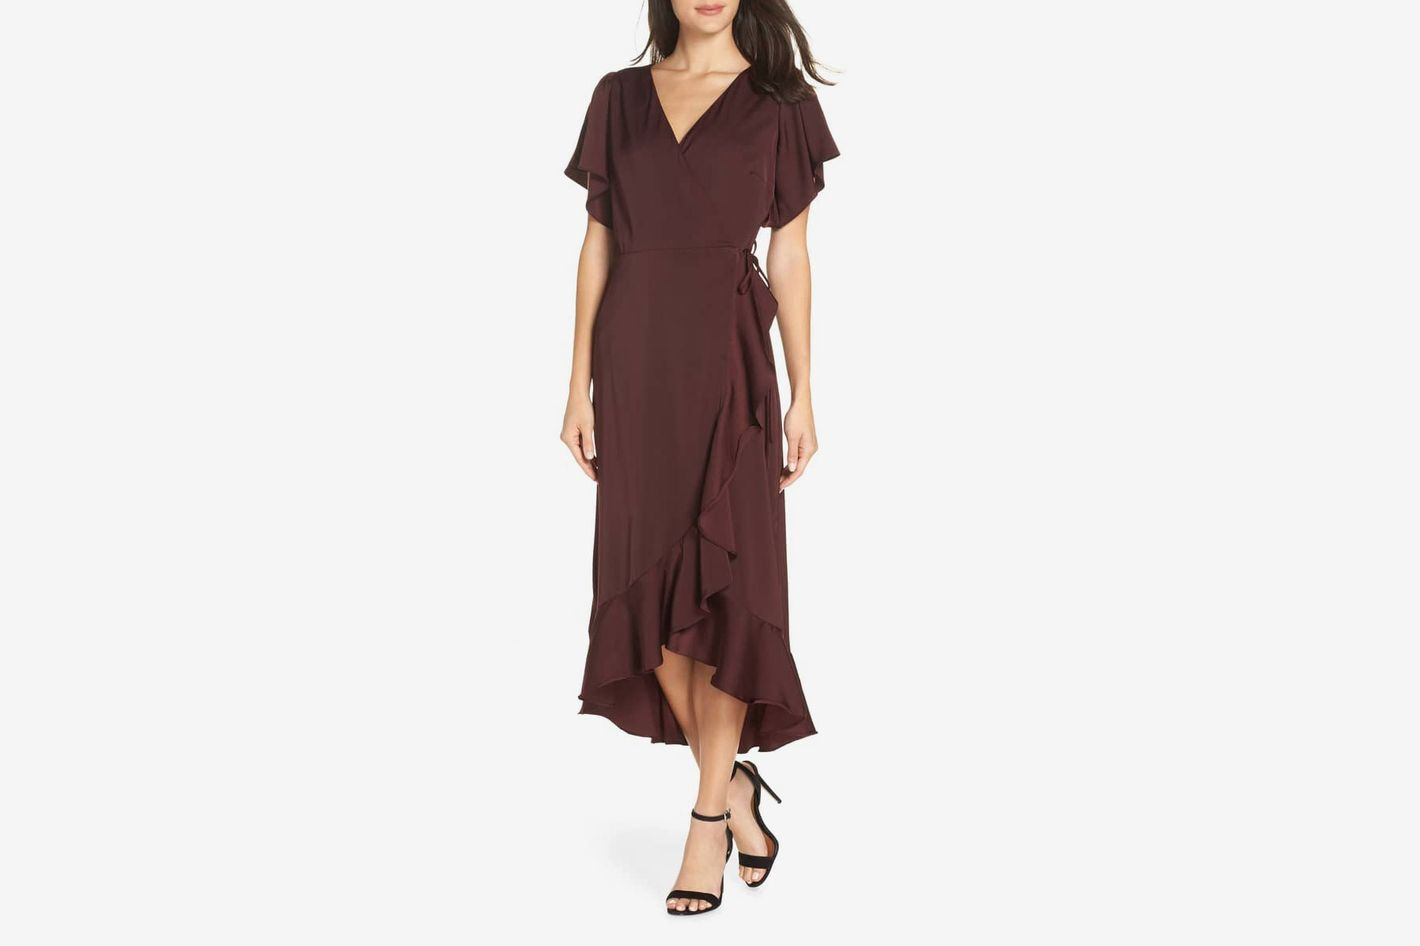 16 Fall Wedding Guest Dresses Ideas What To Wear For 2018